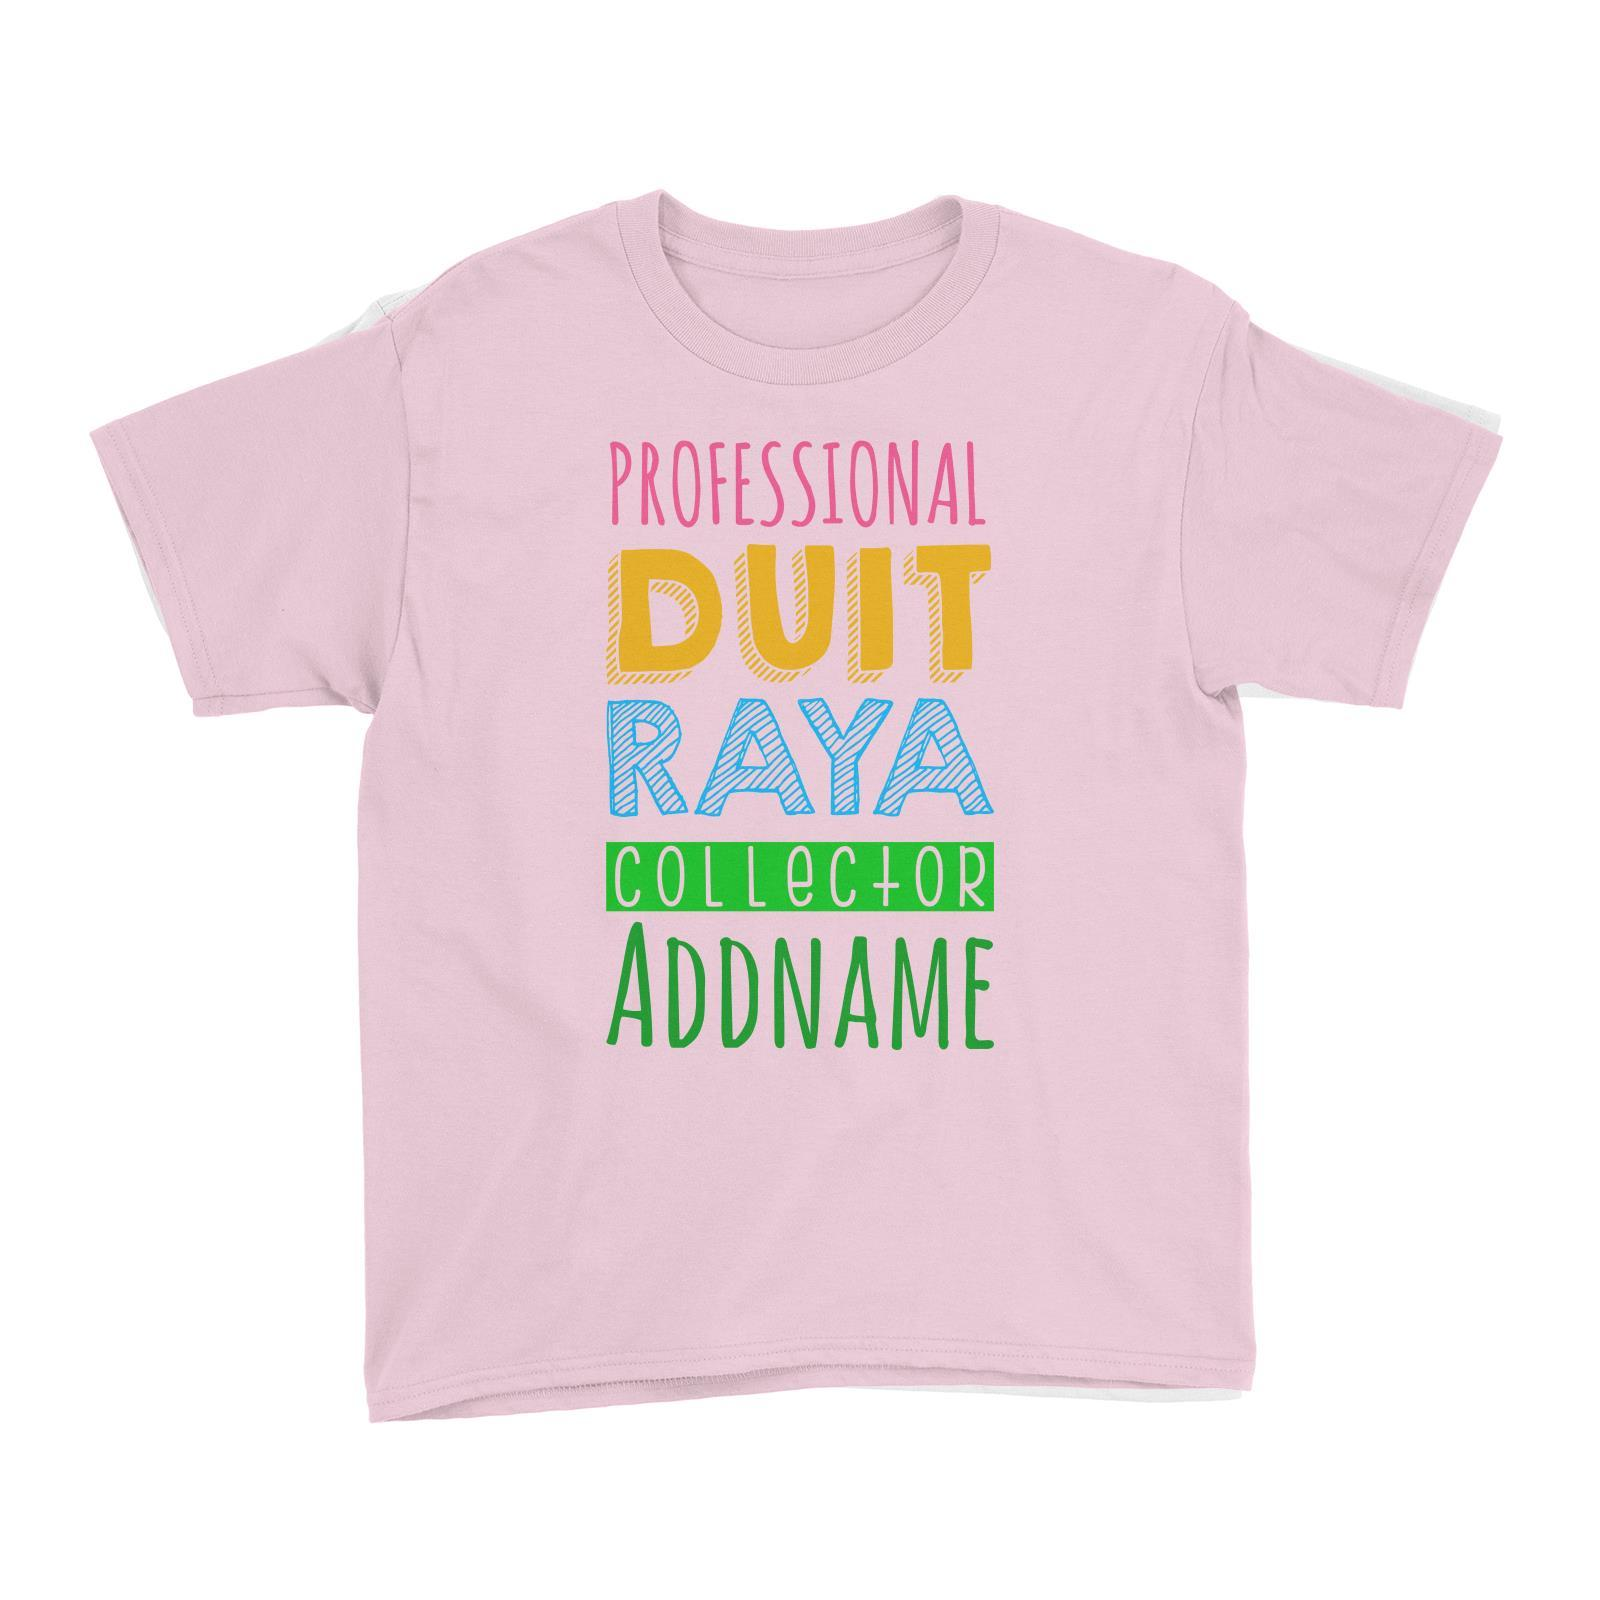 Professional Duit Raya Collector Kid's T-Shirt  Personalizable Designs